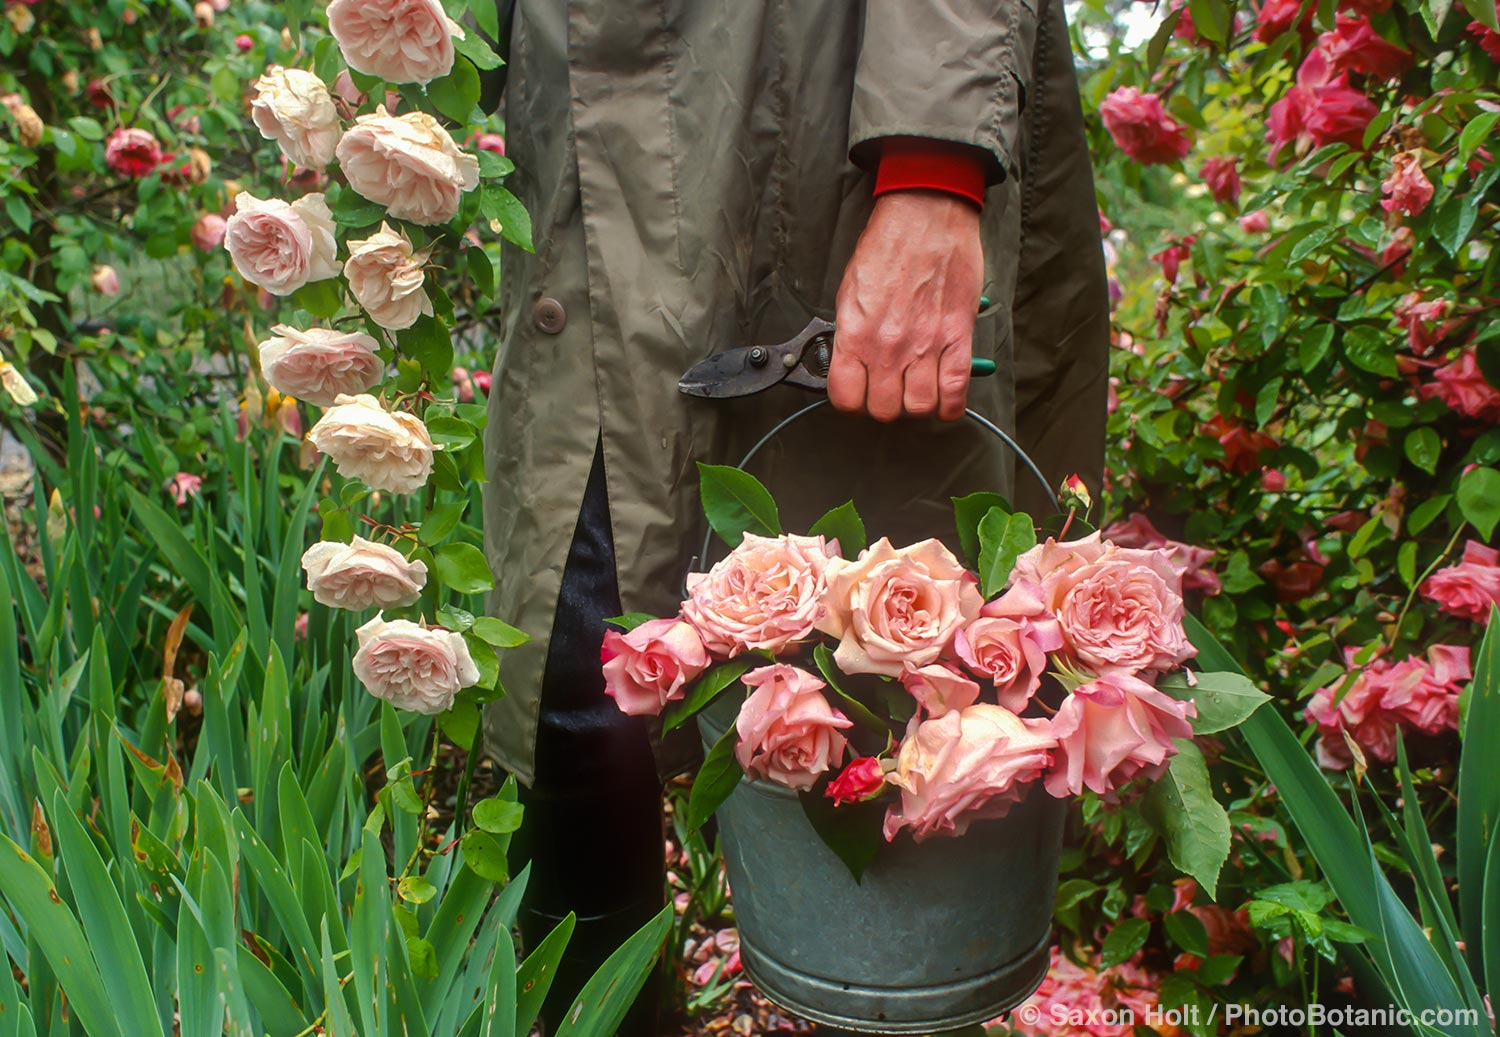 Gardener with bucket of the old rose 'Maman Cochet'; old heirloon roses on a rainy day harvest